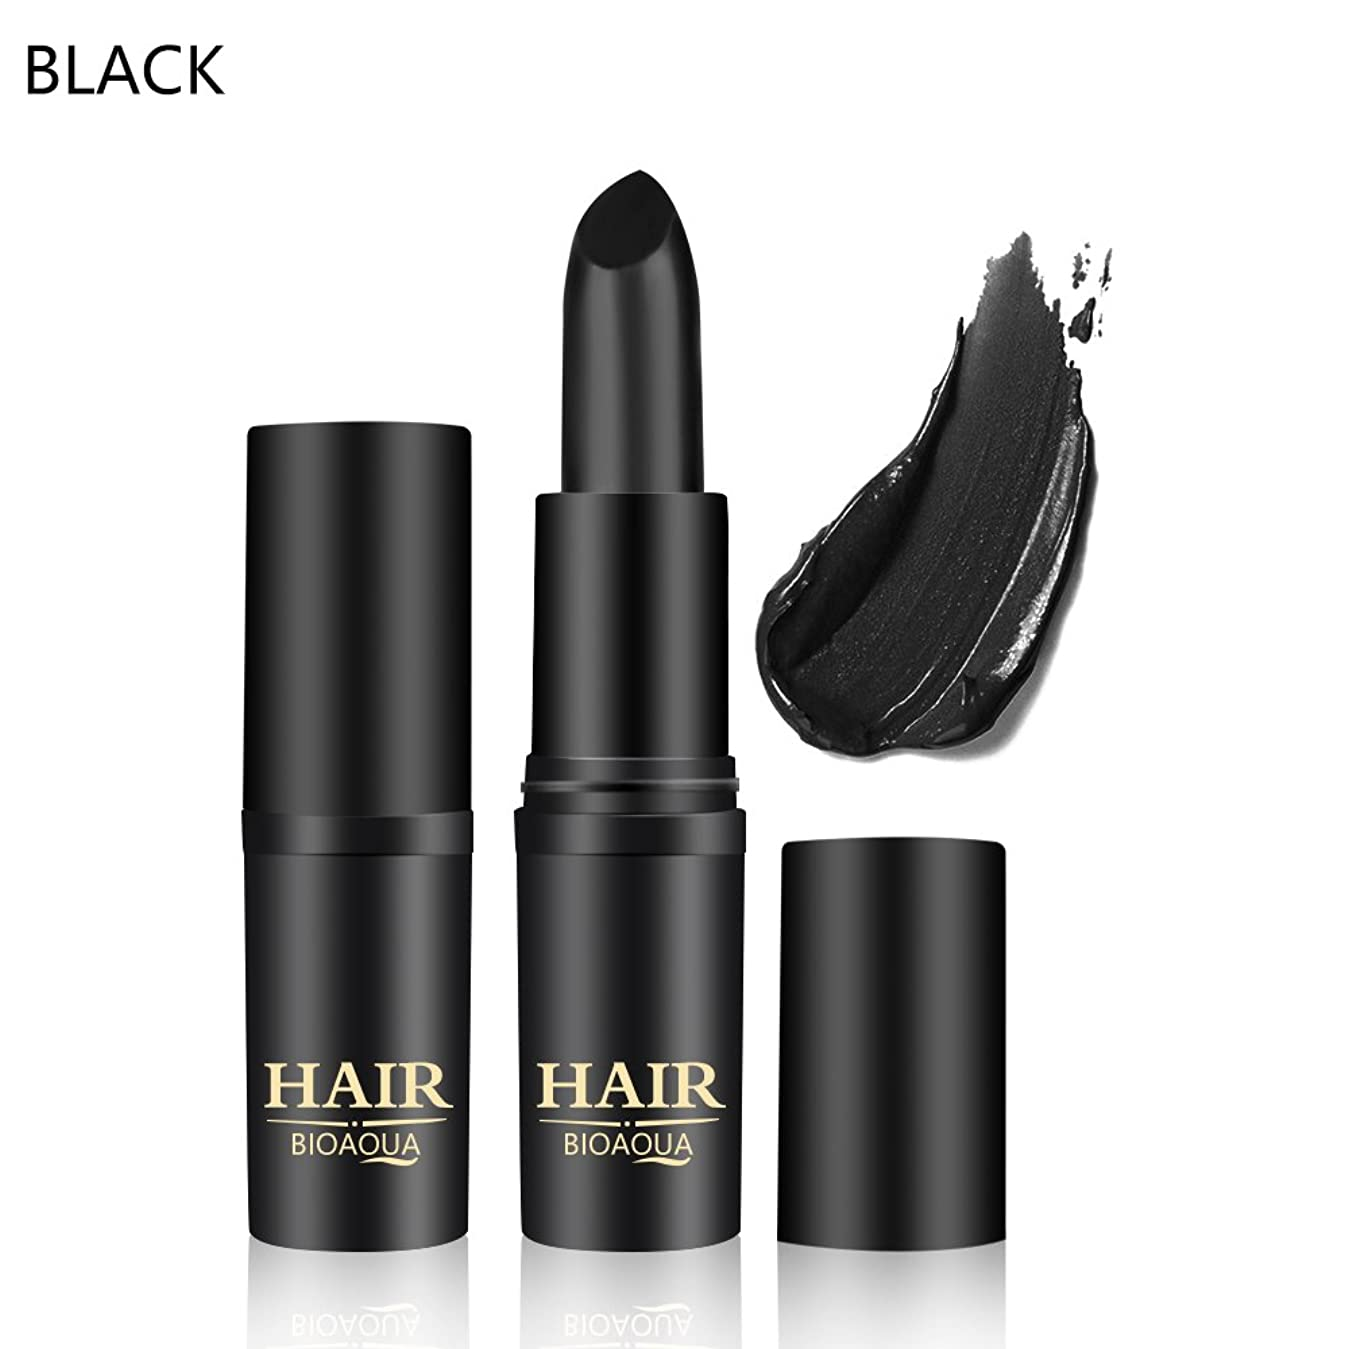 賠償メナジェリーデータベース[BLACK] 1PC Temporary Hair Dye Cream Mild Fast One-off Hair Color Stick Pen Cover White Hair DIY Styling Makeup Beauty Tools